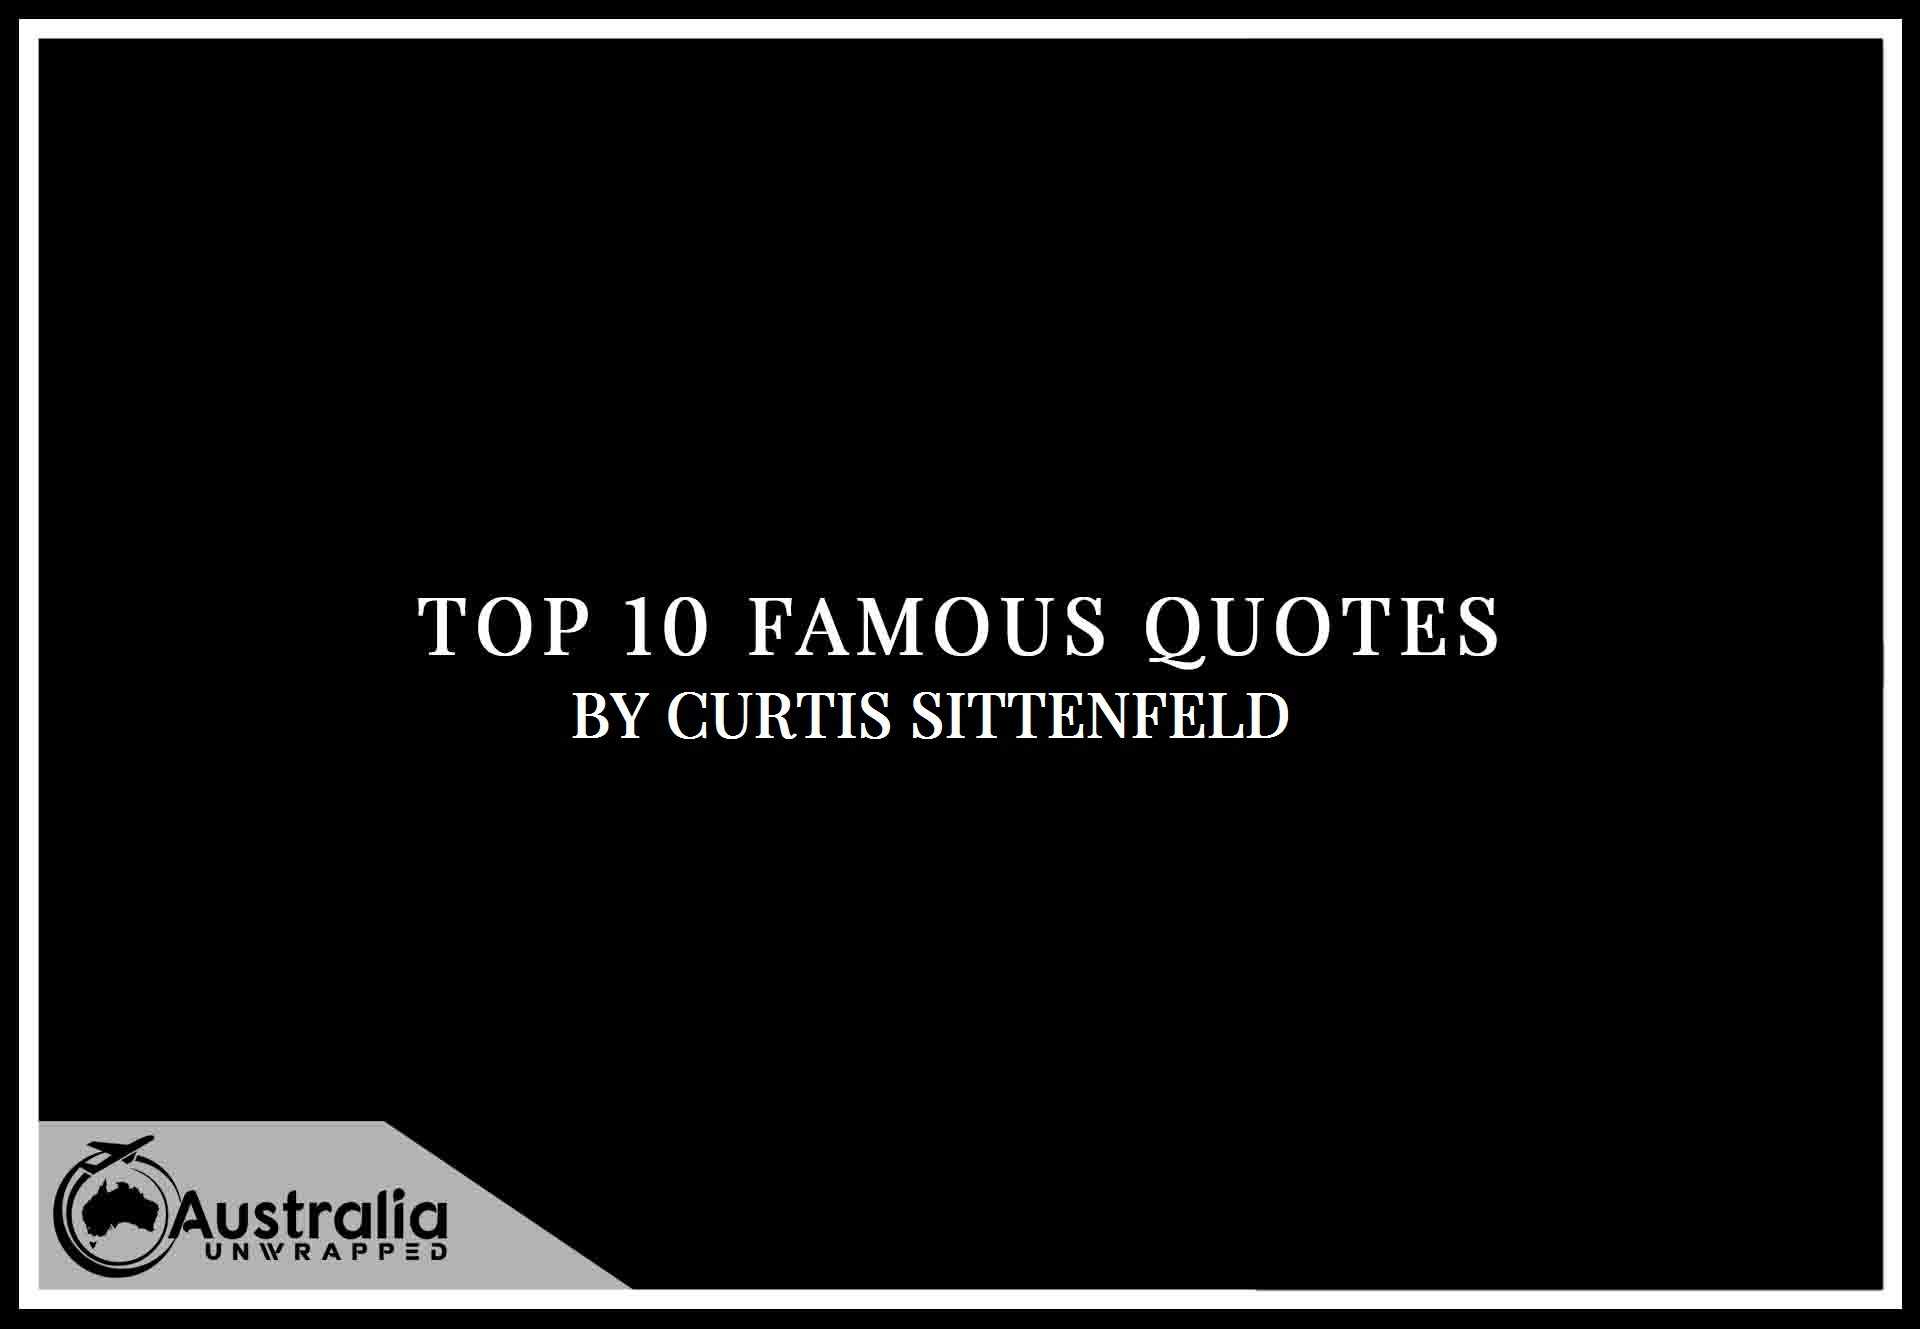 Curtis Sittenfeld's Top 10 Popular and Famous Quotes